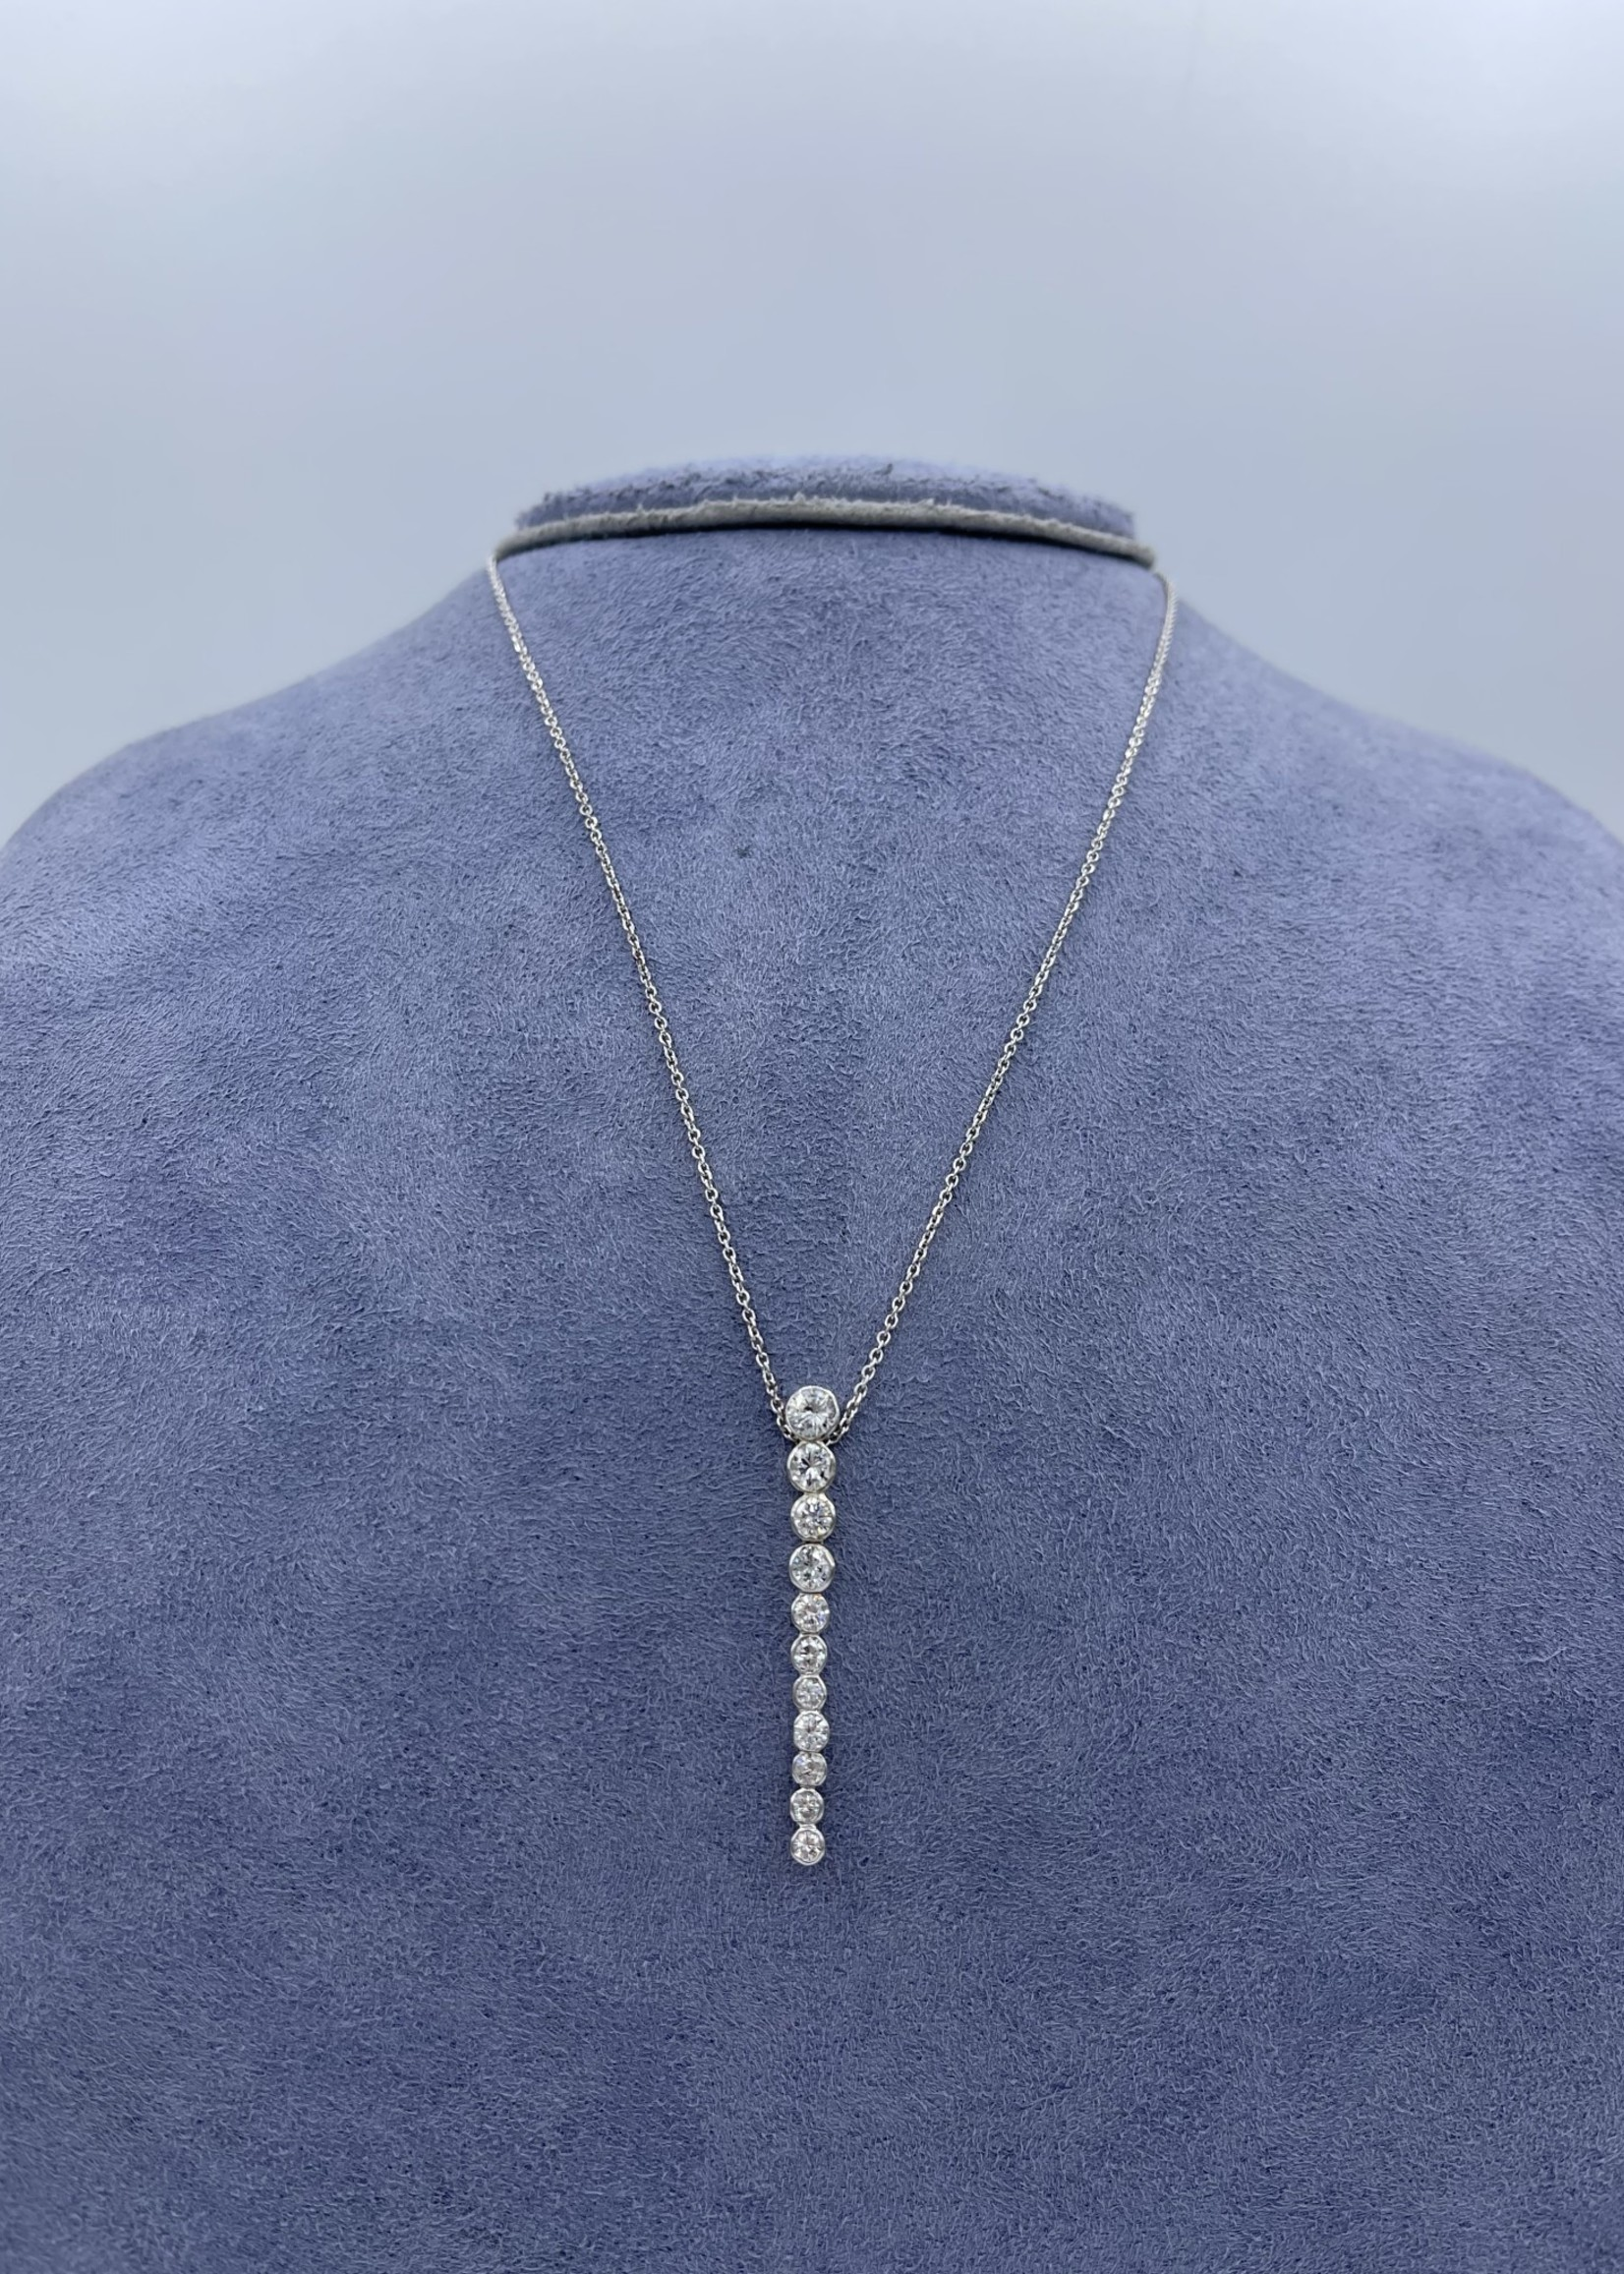 CJ Designs Stacked Dia Necklace 1ctw